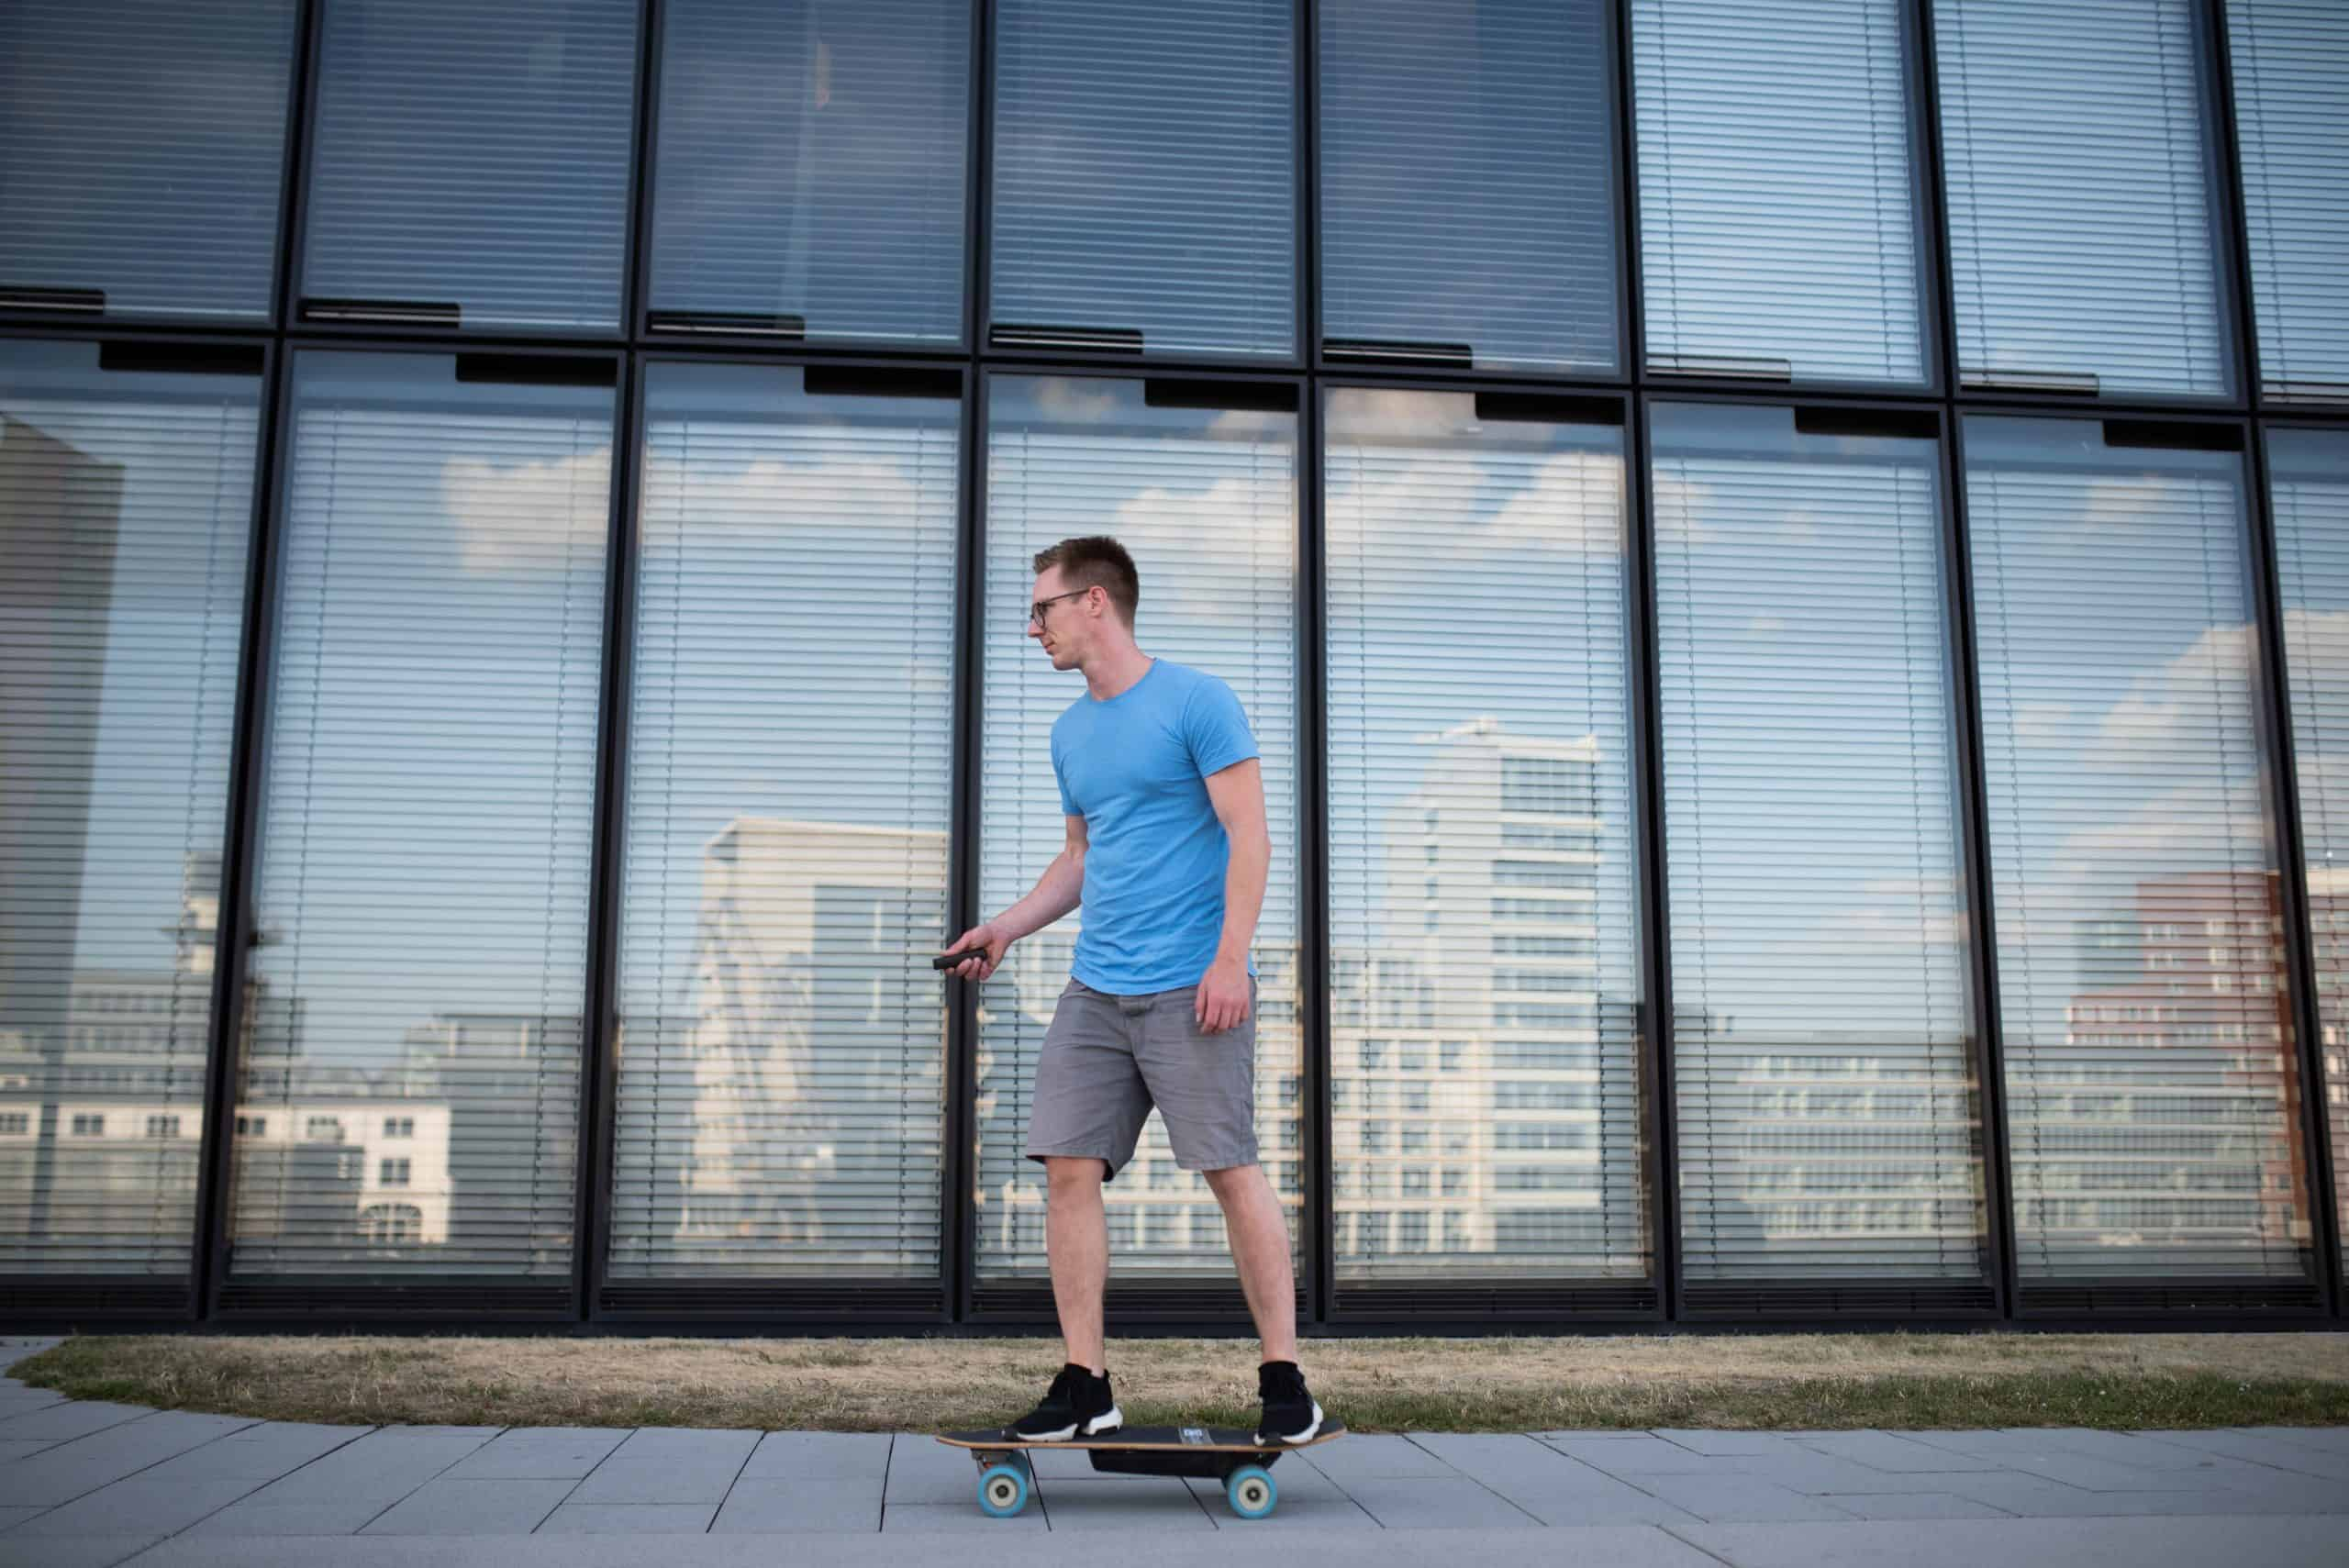 Why are Electric Skateboards Expensive?